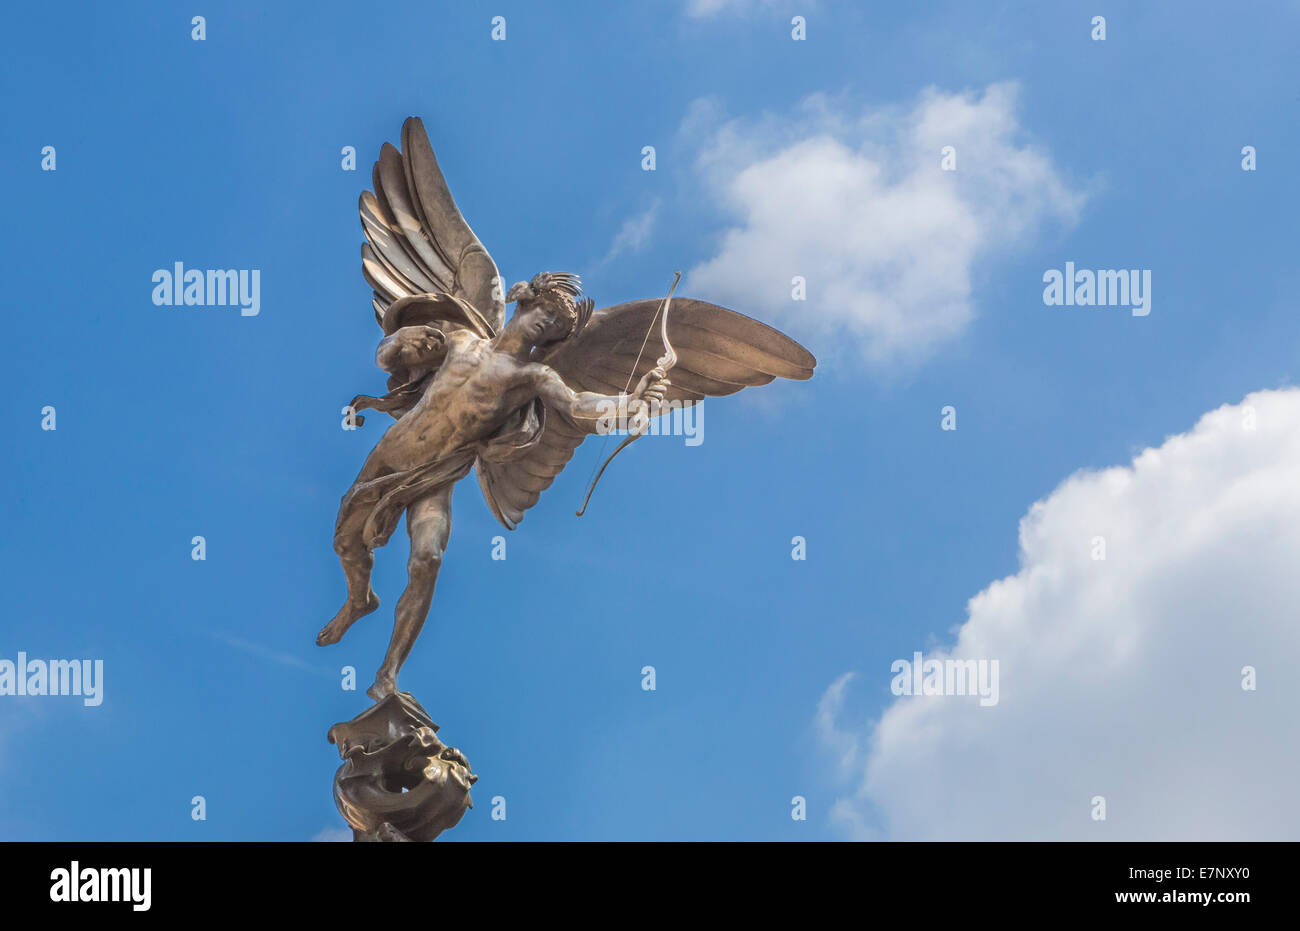 Piccadilly Circus, City, London, England, UK, angel, famous, love, sculpture, tourism, travel, wings, Eros, - Stock Image